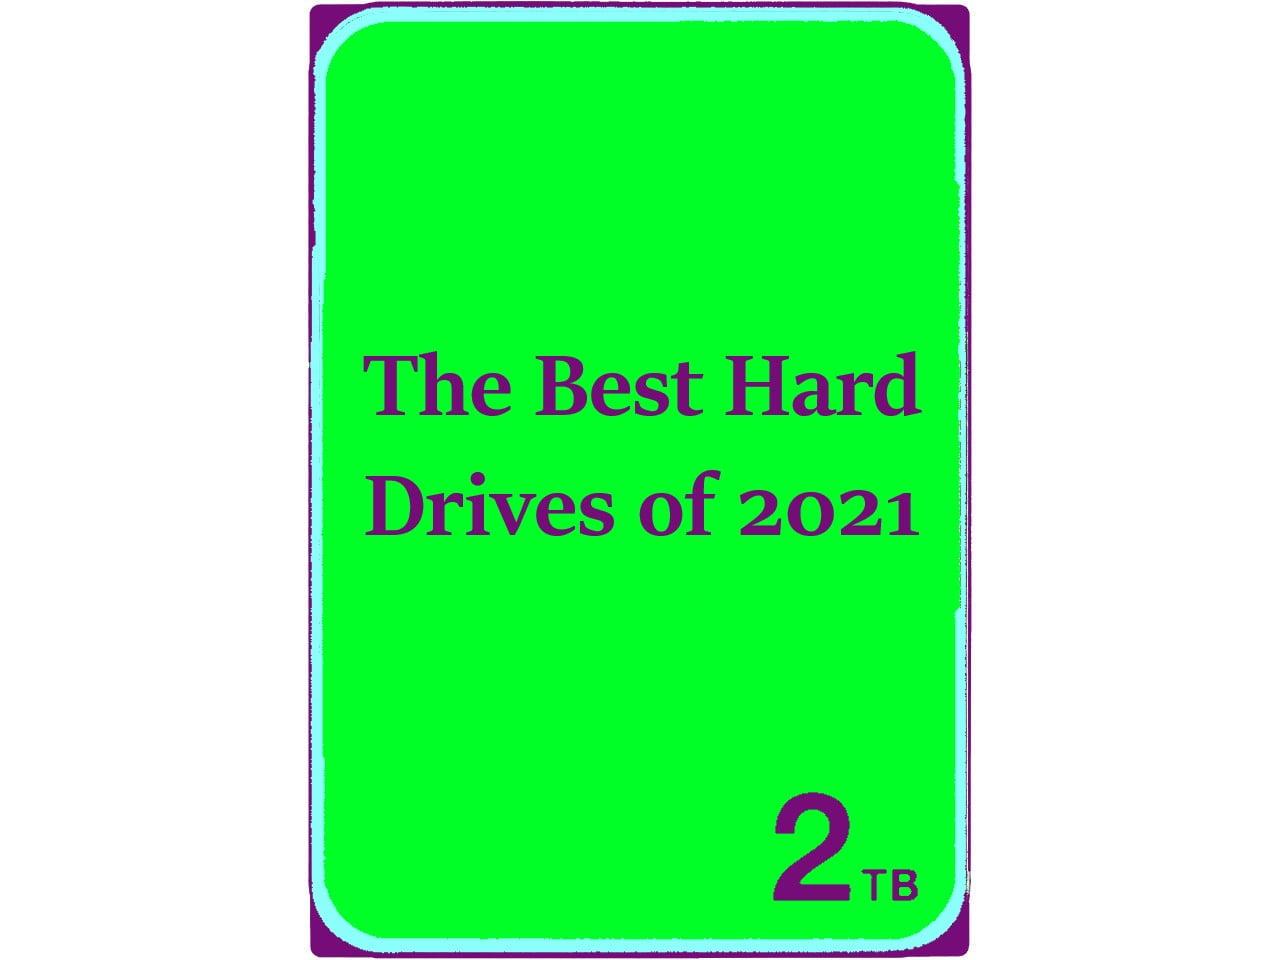 Best Hard Drives of 2021